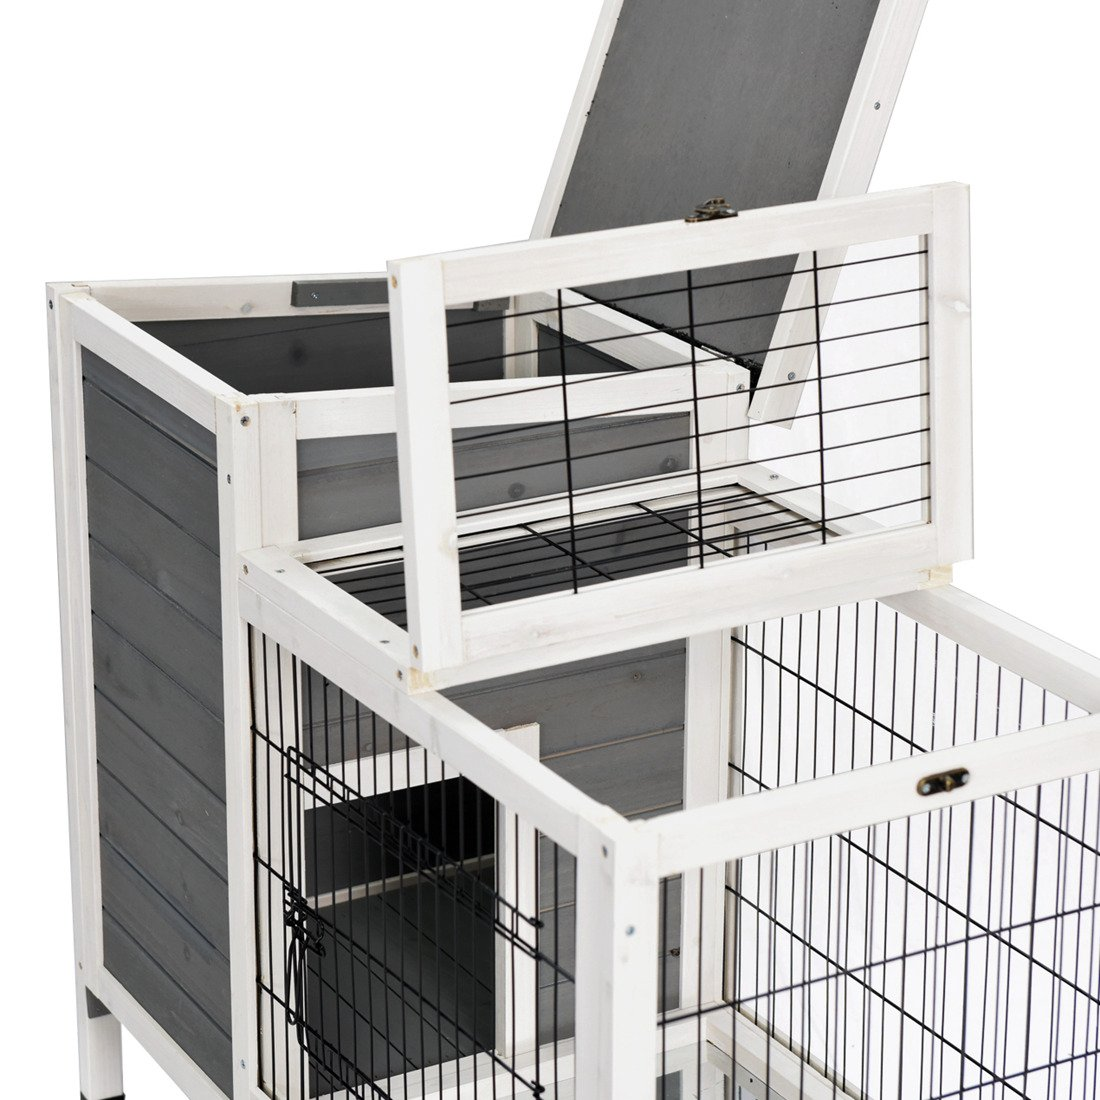 Good Life Wooden Outdoor Bunny Hutch Rabbit Cage Guinea Pig Coop PET House Gray & White Color PET502 by GOOD LIFE USA (Image #4)